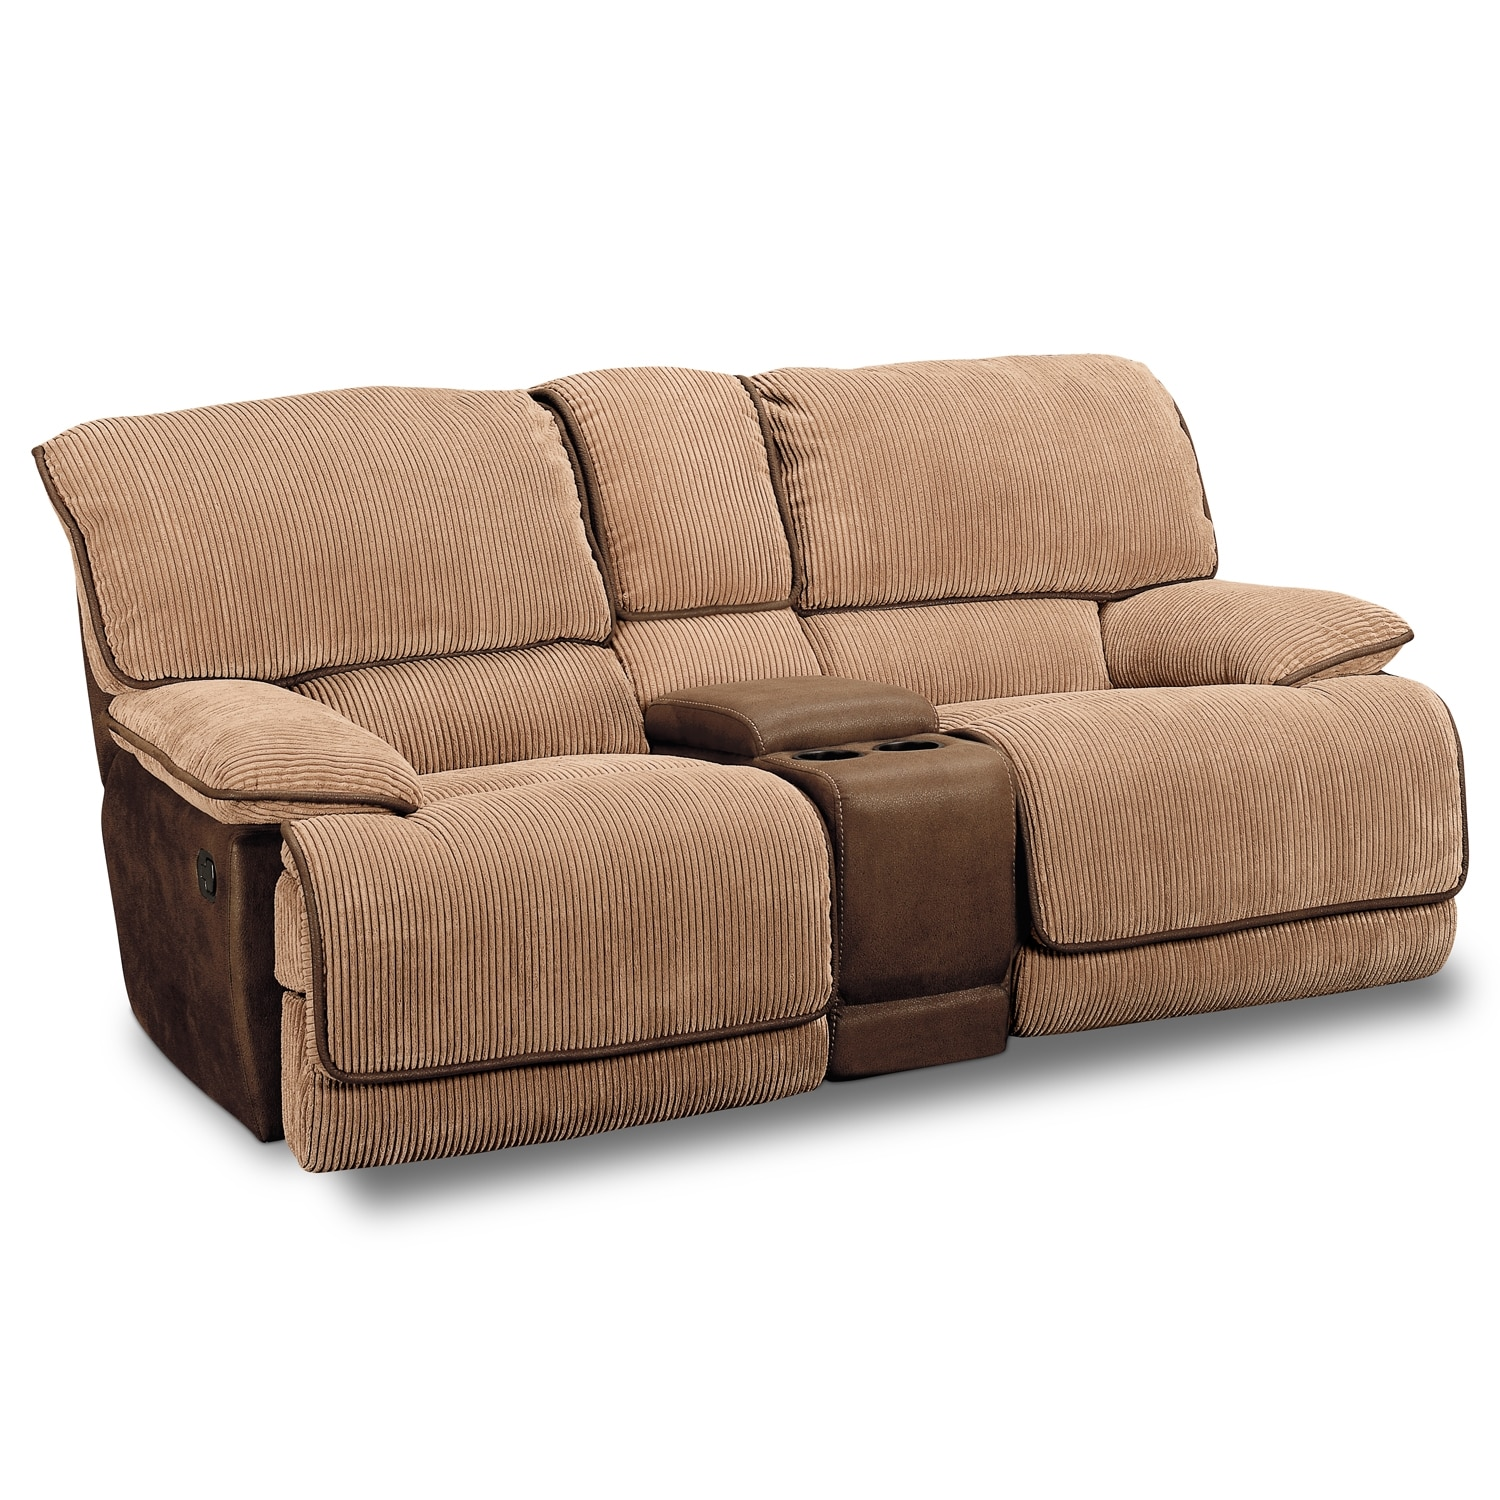 Laguna Gliding Reclining Loveseat | American Signature Furniture